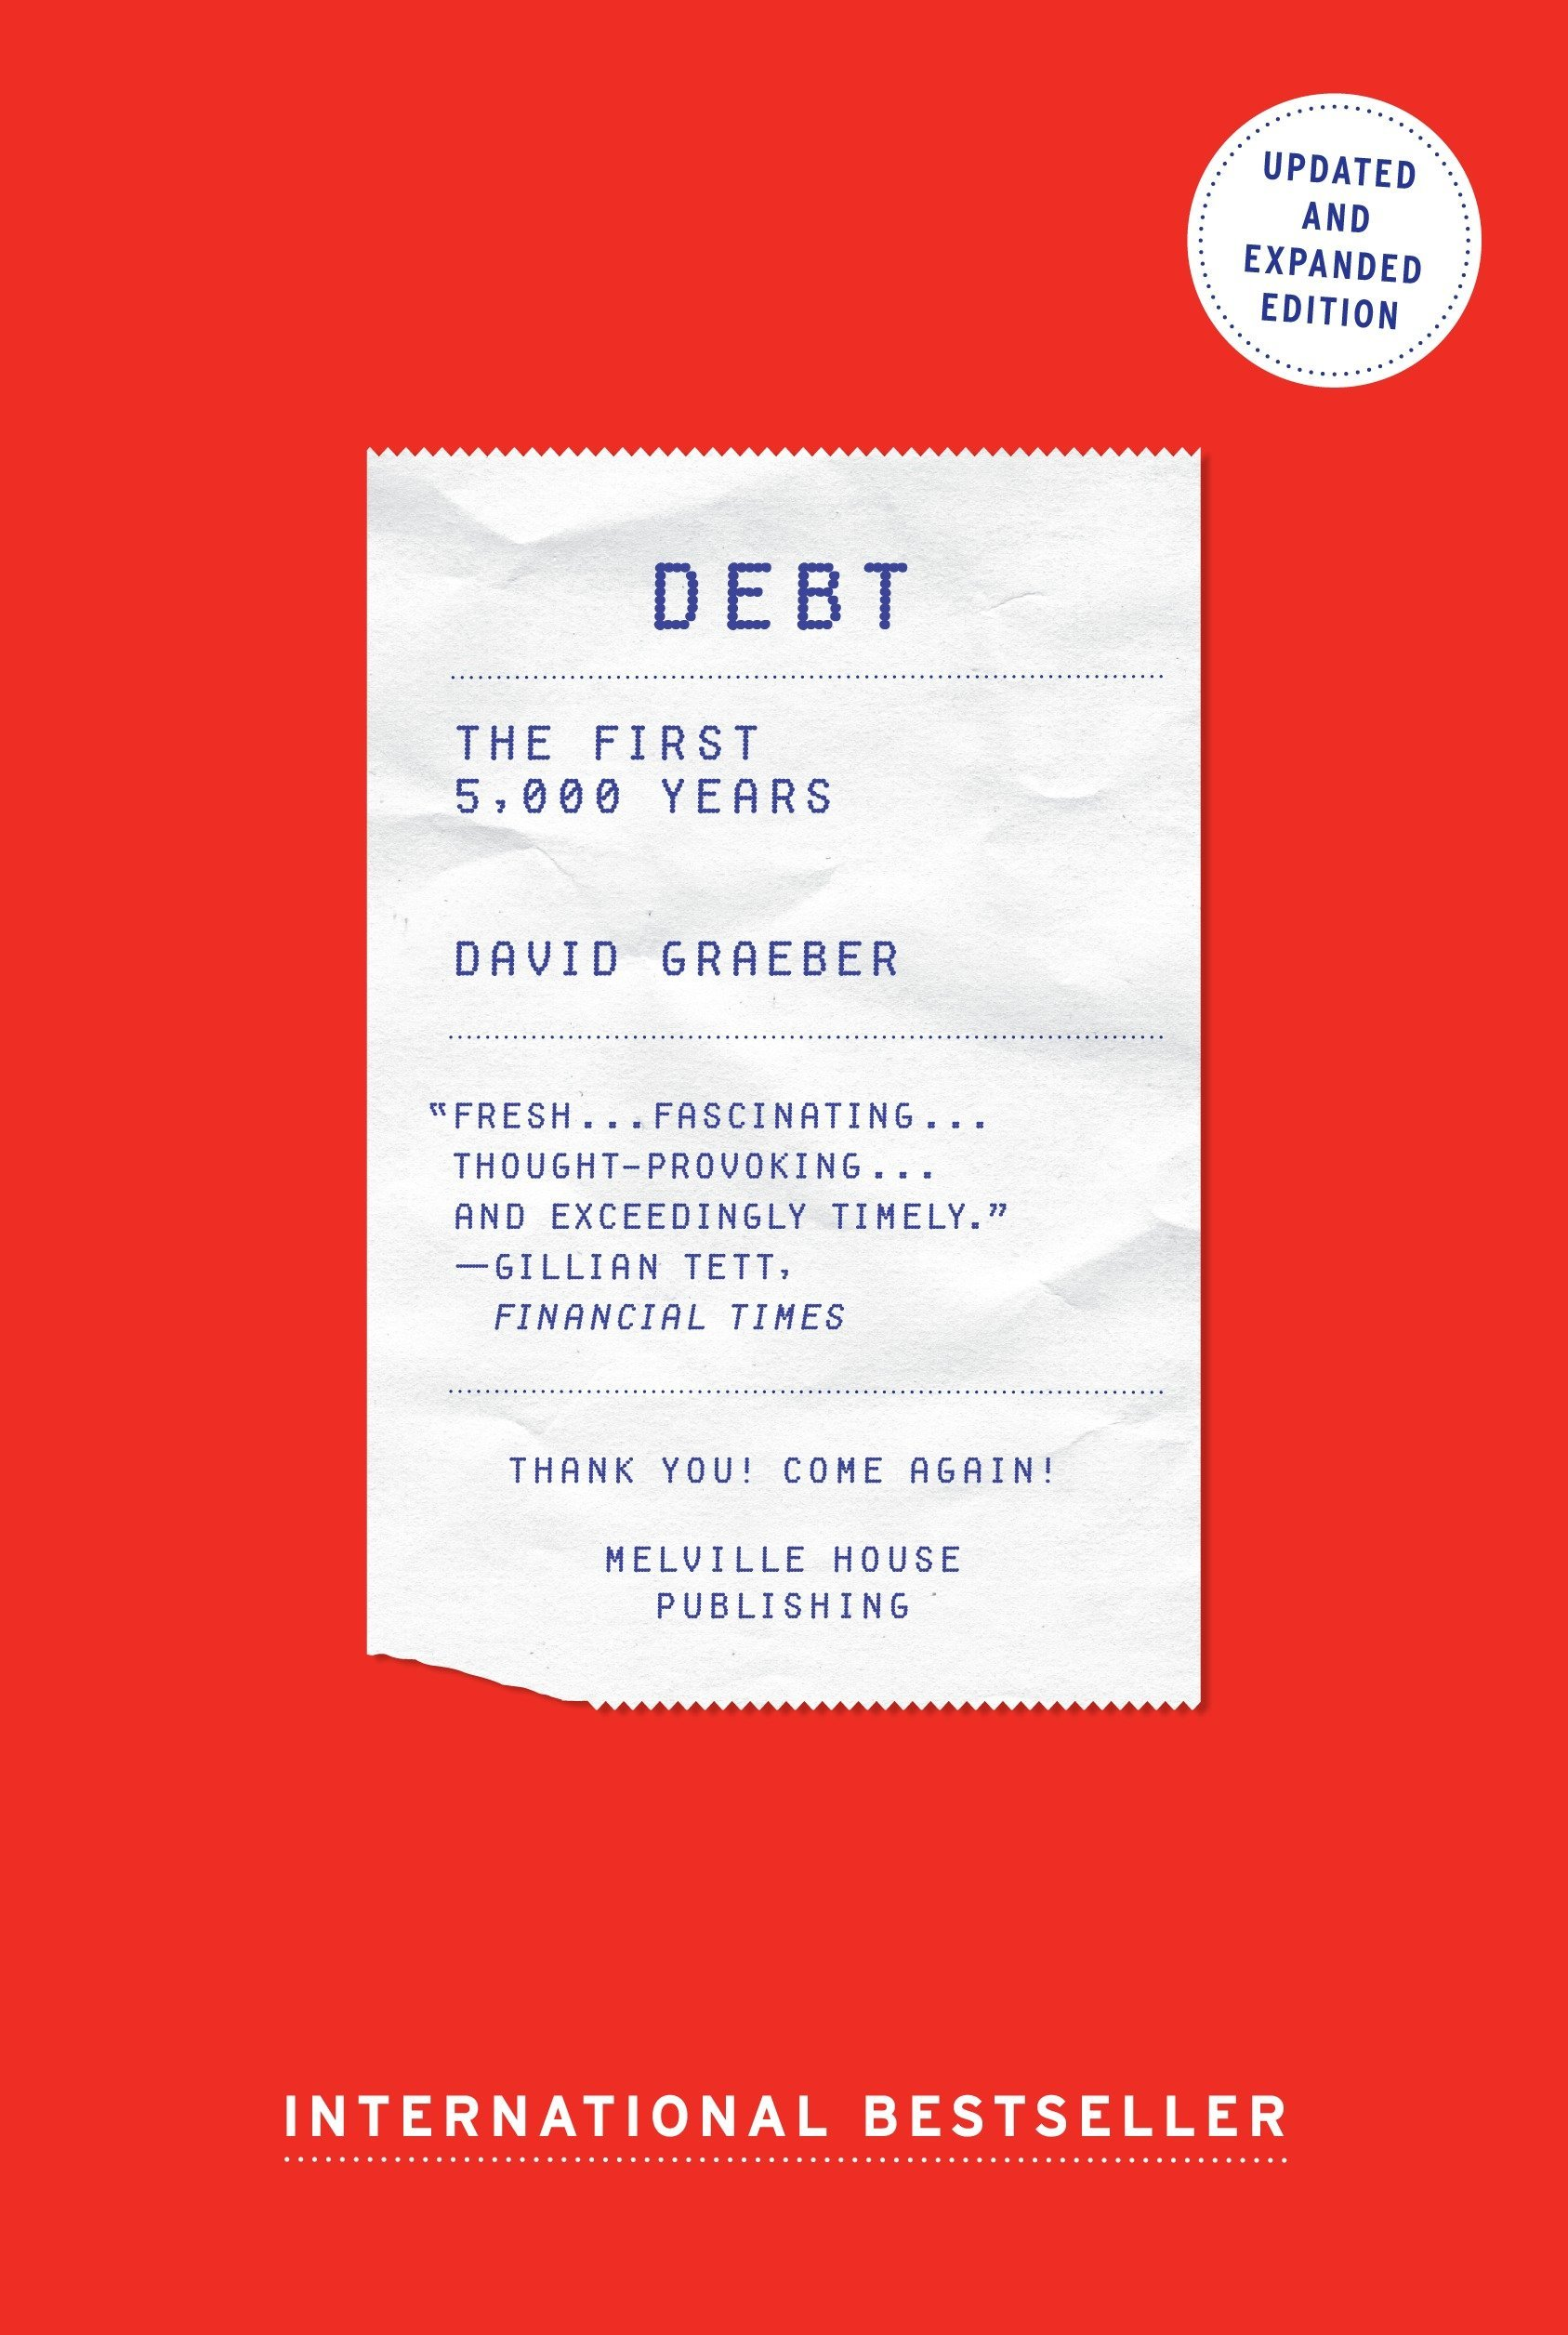 Debt - Updated and Expanded: The First 5,000 Years